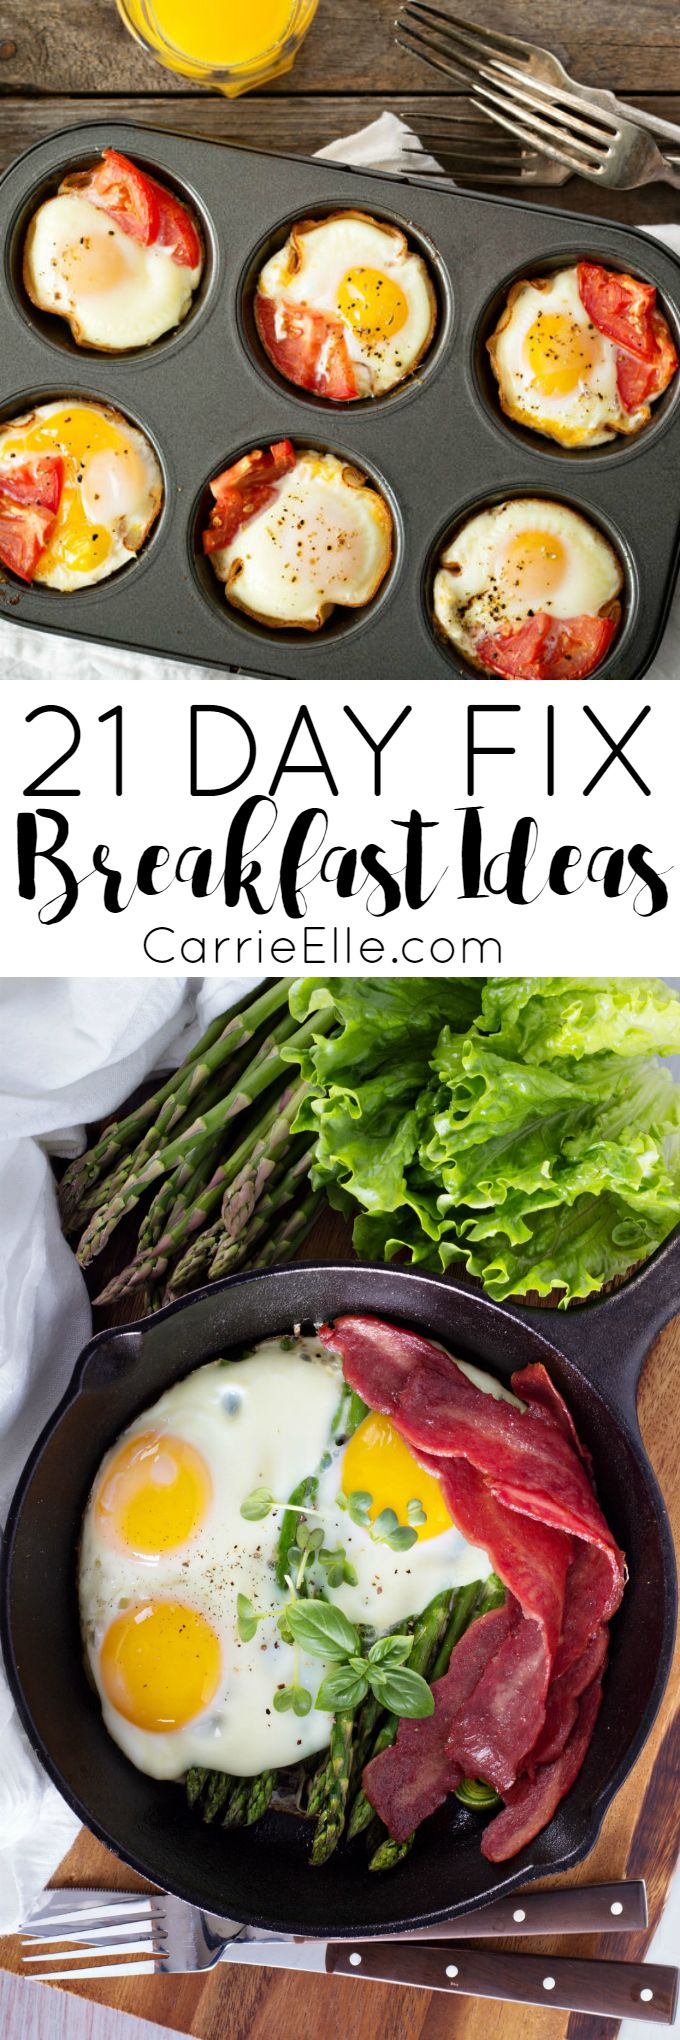 21 Day Fix Breakfast Ideas                                                                                                                                                                                 More